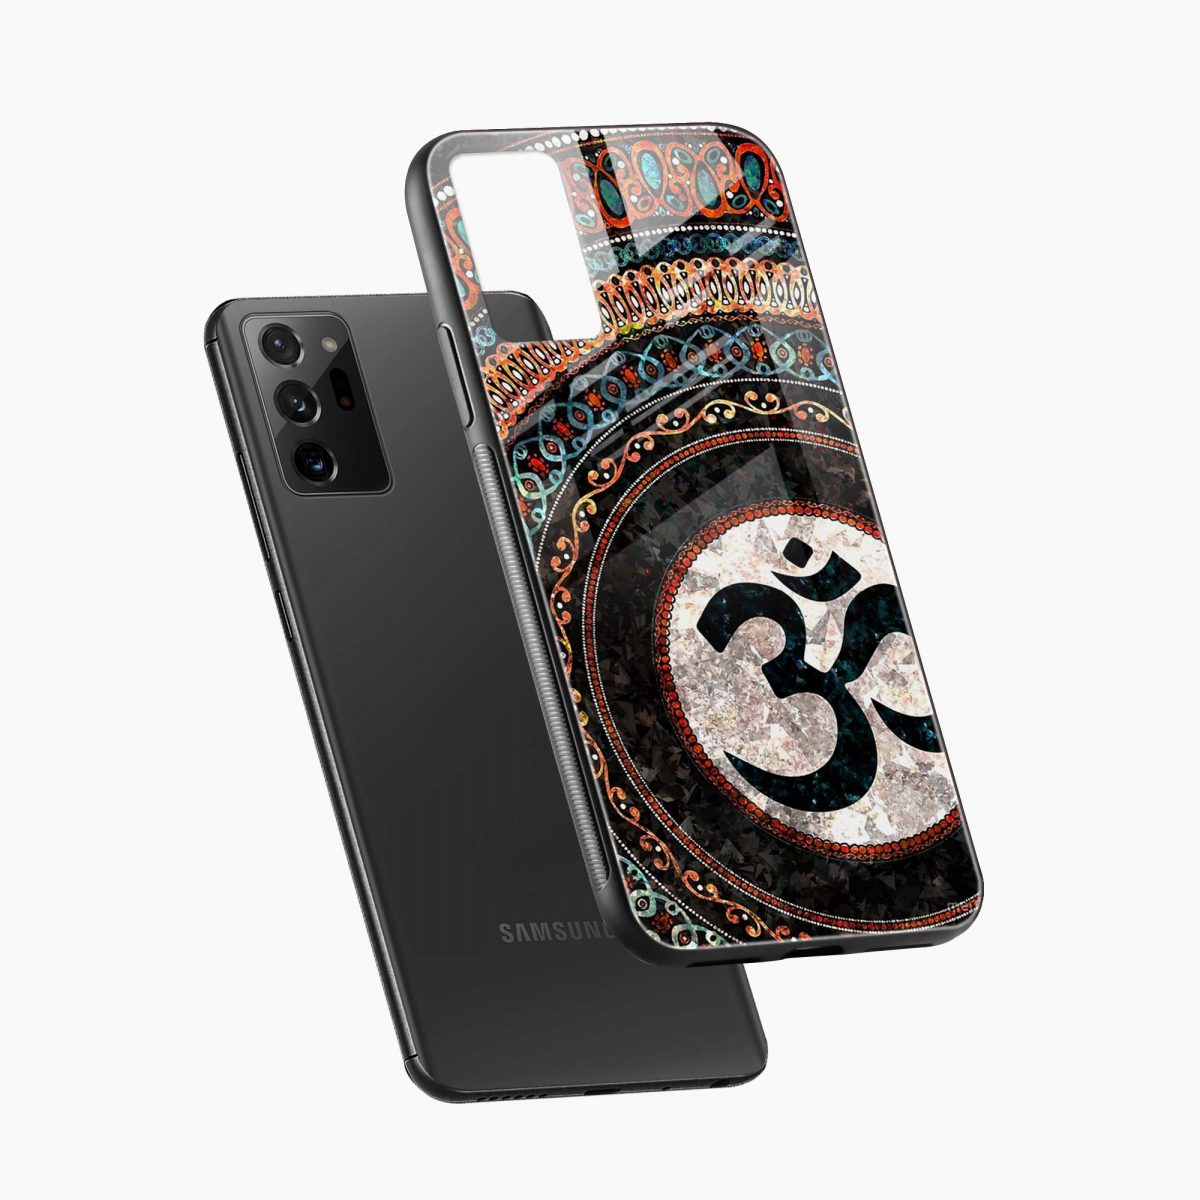 om glass diagonal view samsung galaxy note20 ultra back cover